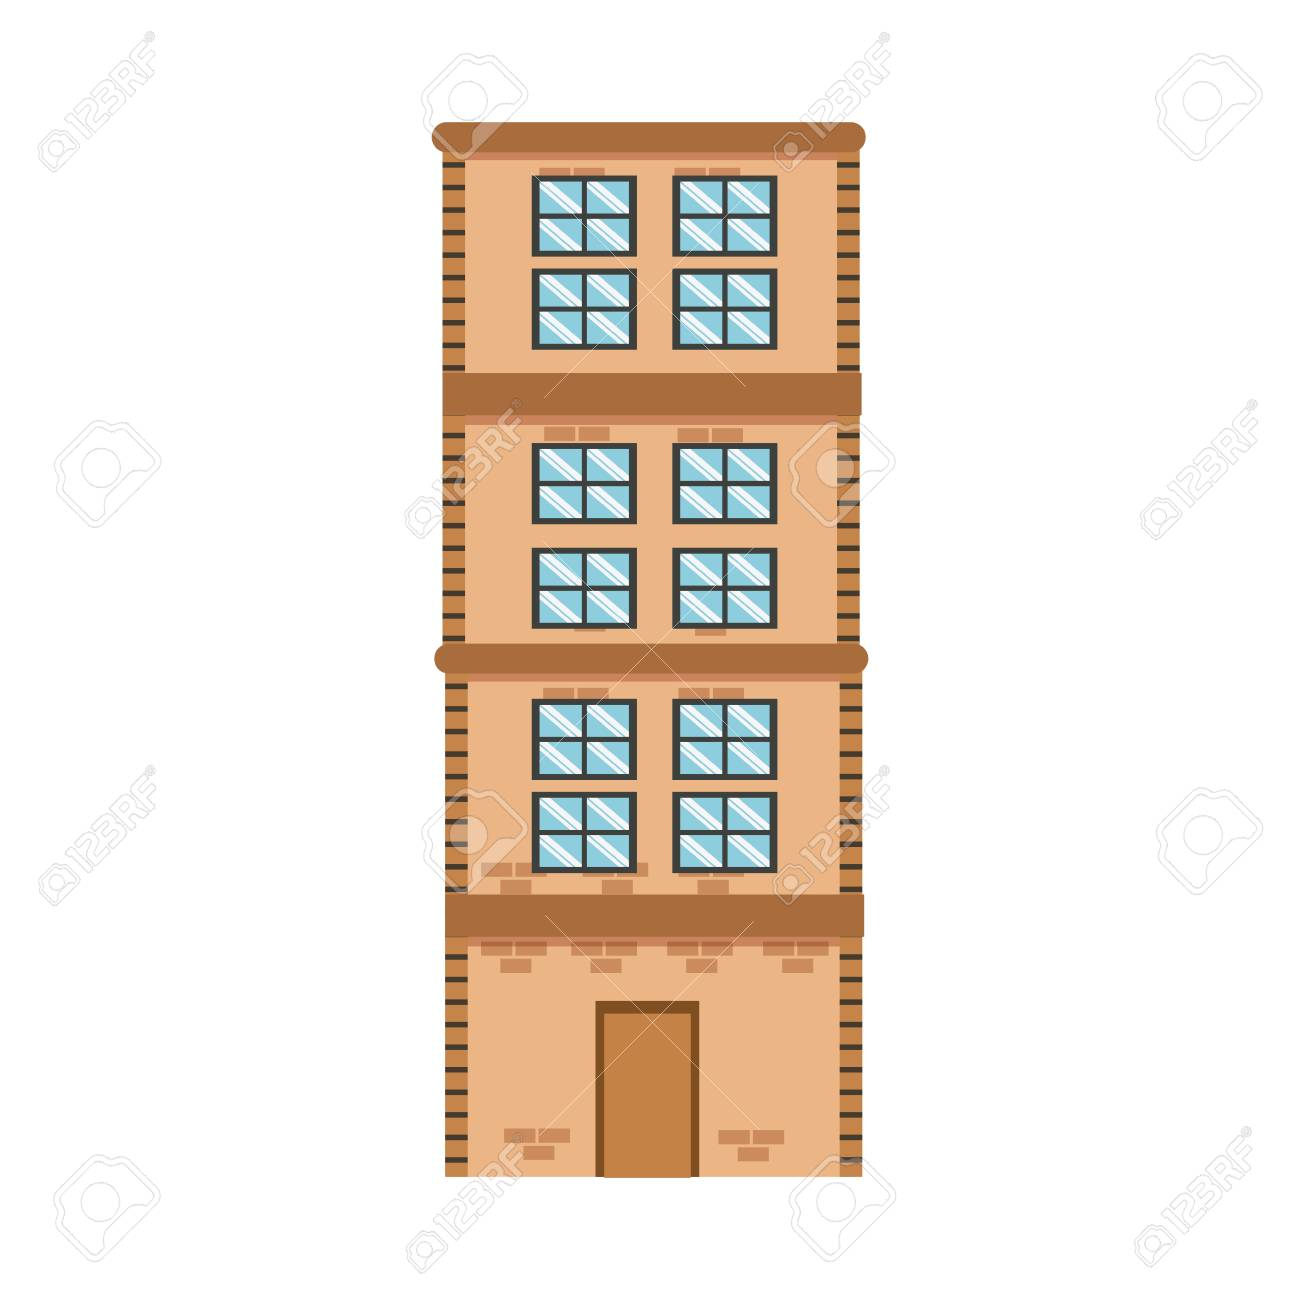 High Building Brick Apartment Residential Vector Illustration. Stock Vector    77097054